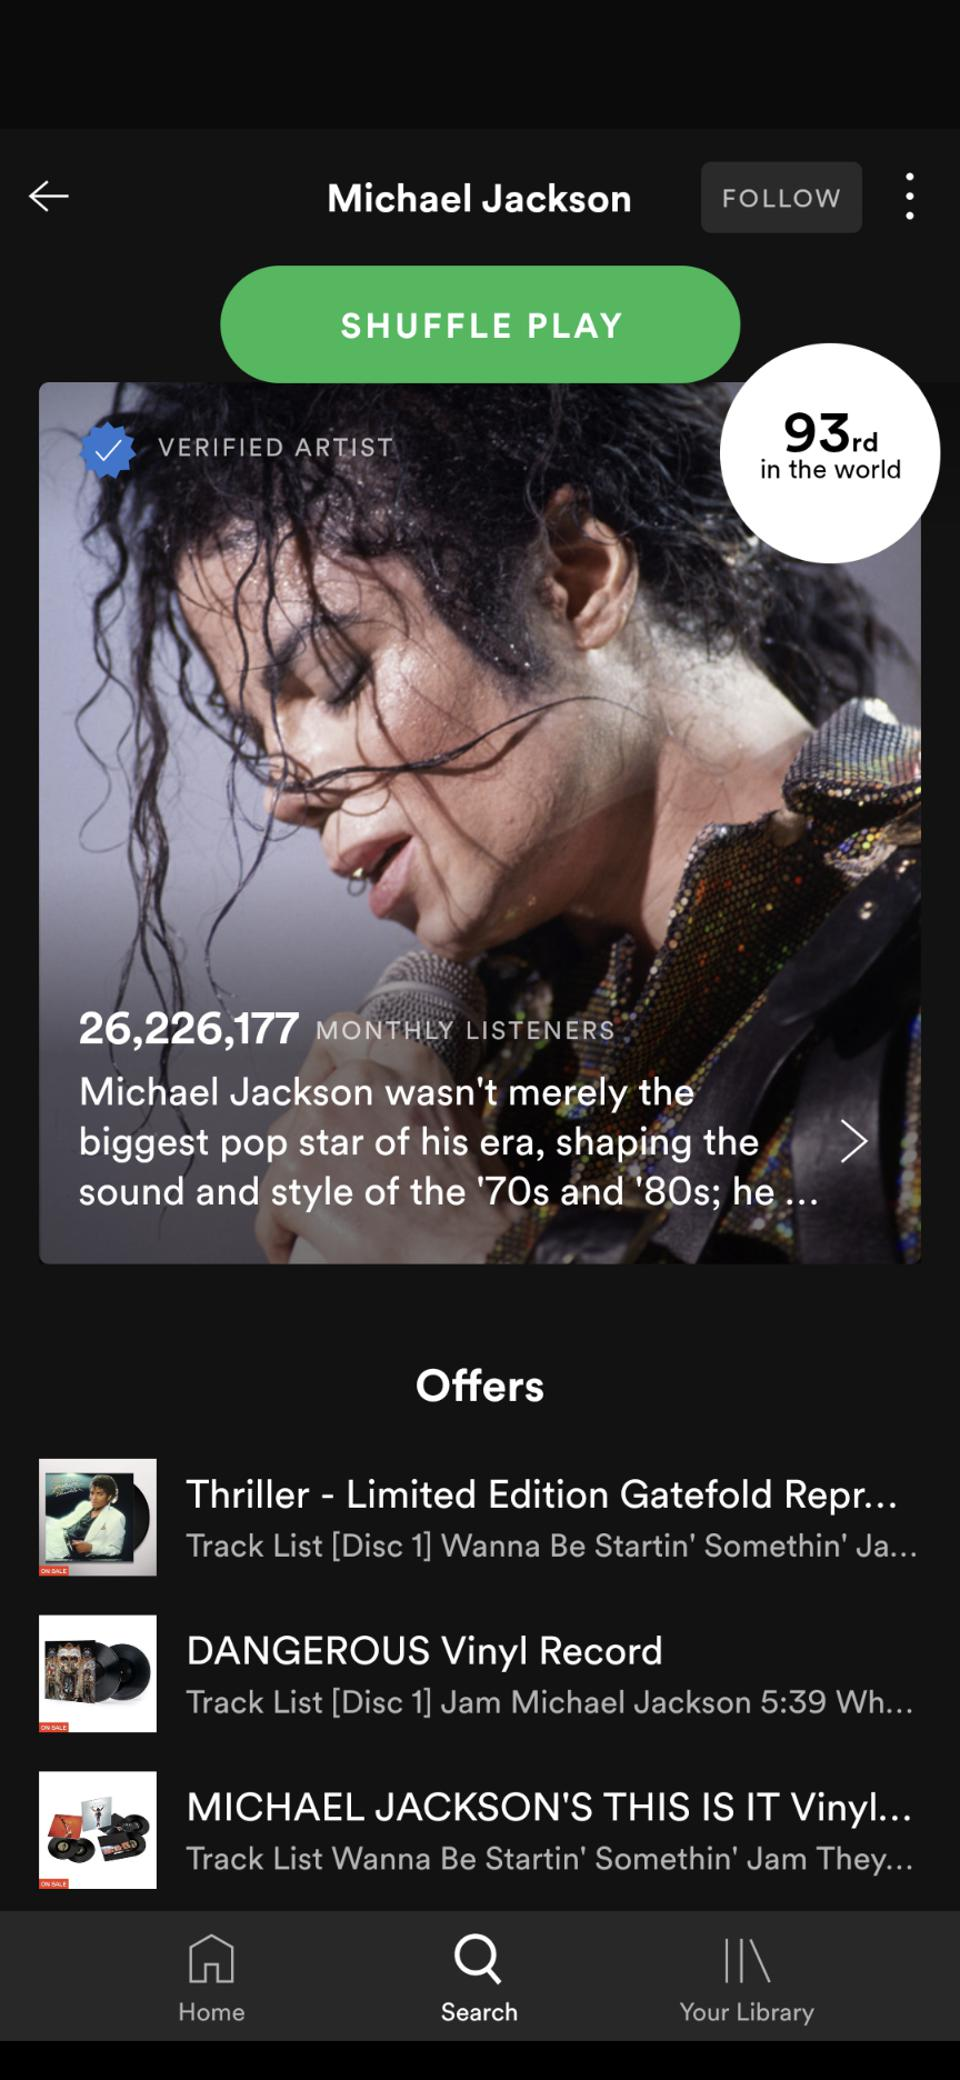 Michael Jackson's spotify channel has over 26 million monthly visitors.